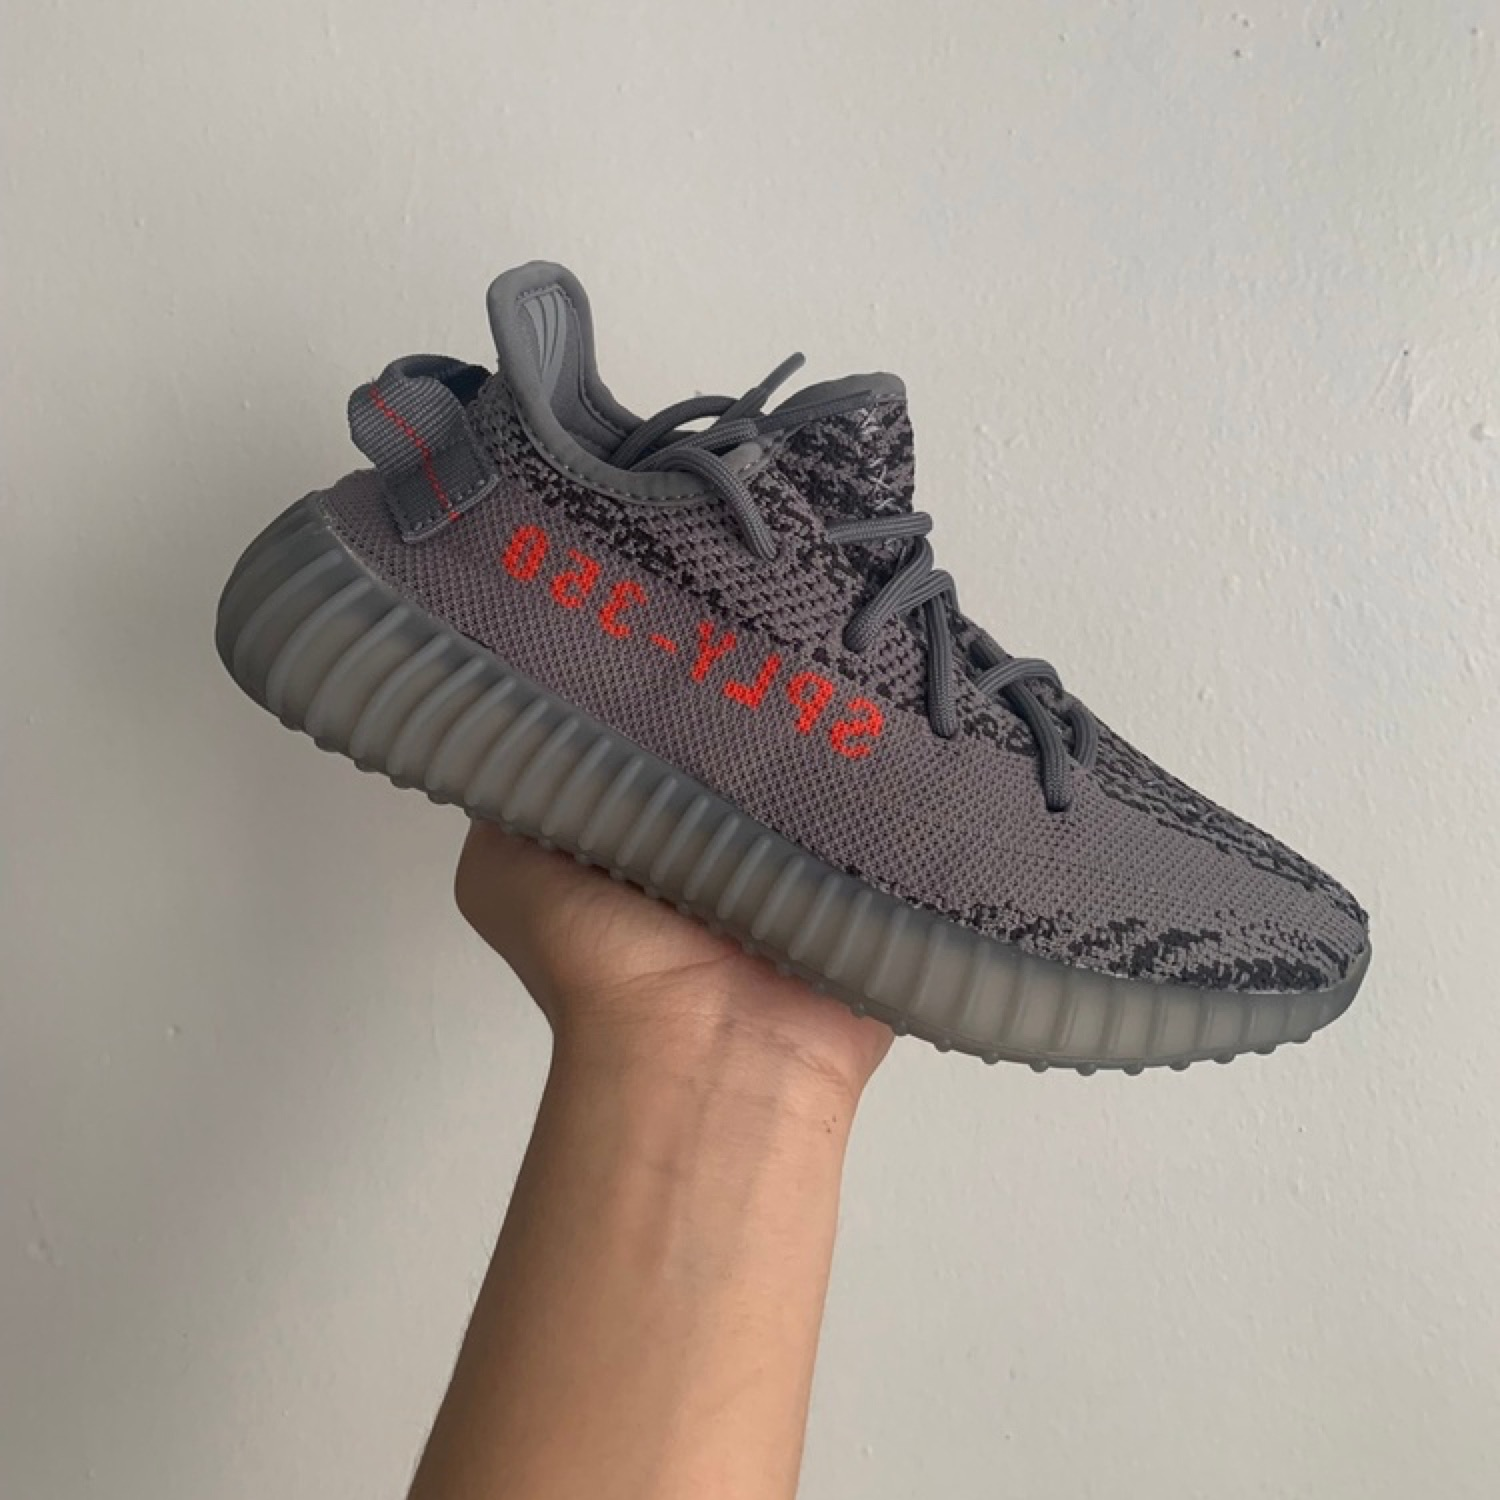 finest selection 4120e 85bb6 Yeezy Boost 350 V2 Beluga 2.0 Size 4.5